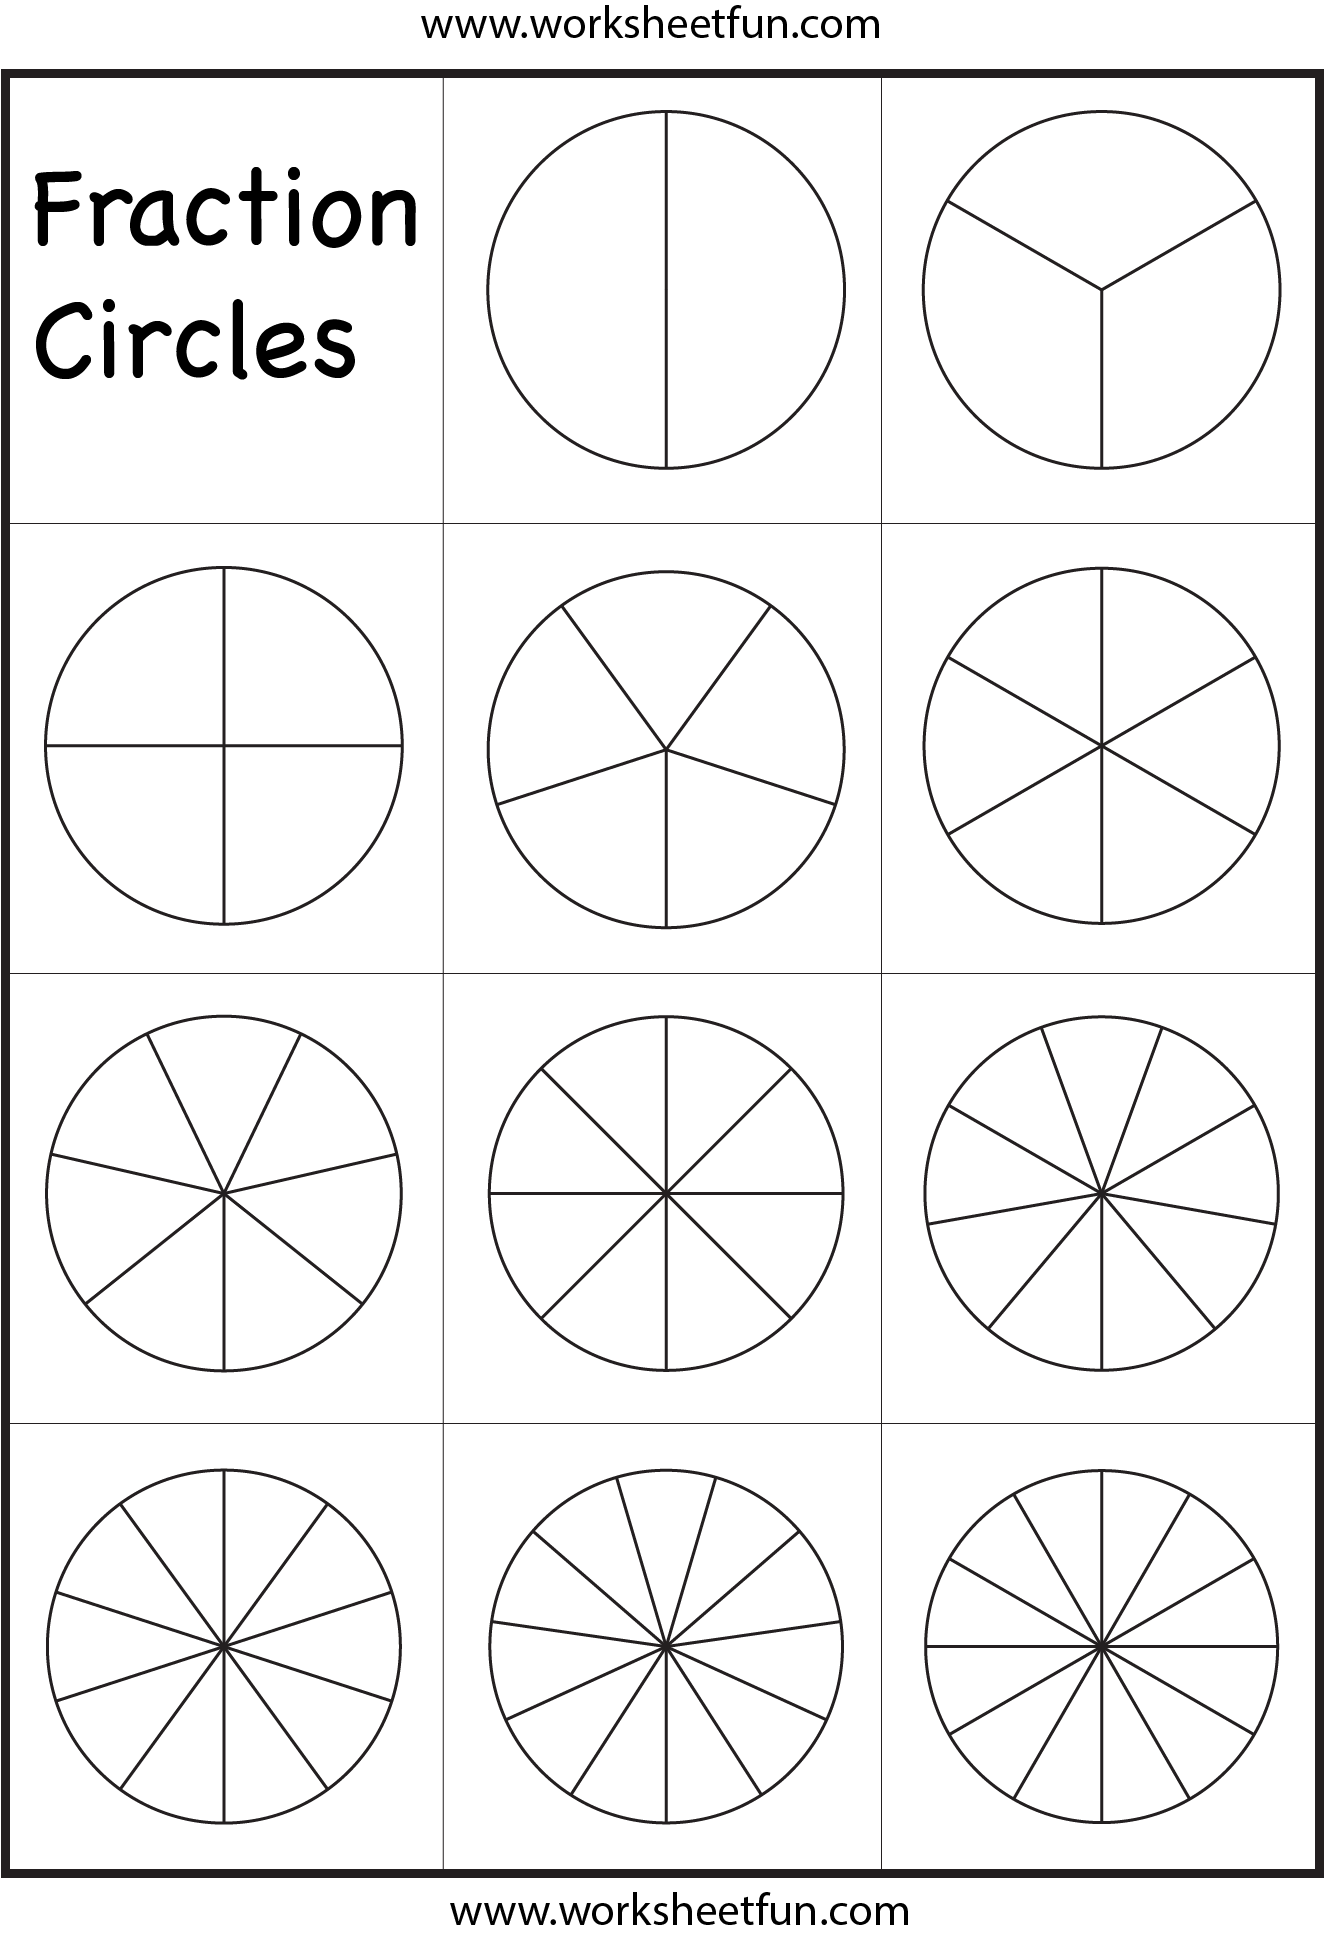 Fraction Circles Template Printable Fraction Circles 1